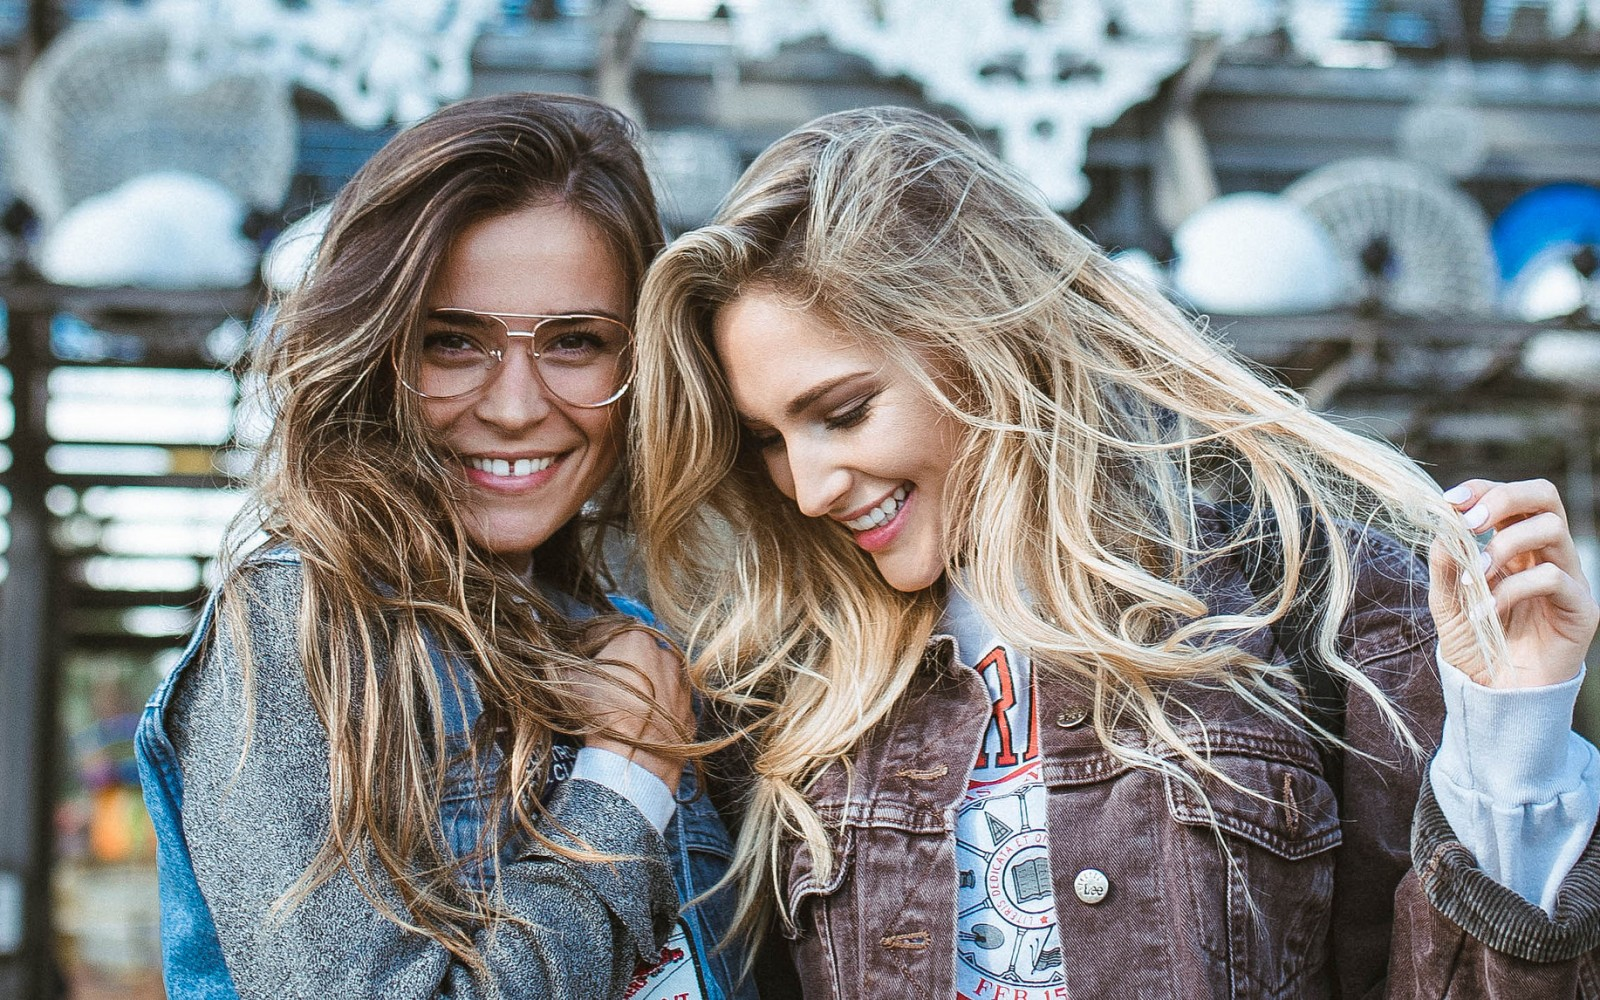 21 Simple Truths About Happiness That Will Lead You Confidently Into The New Year